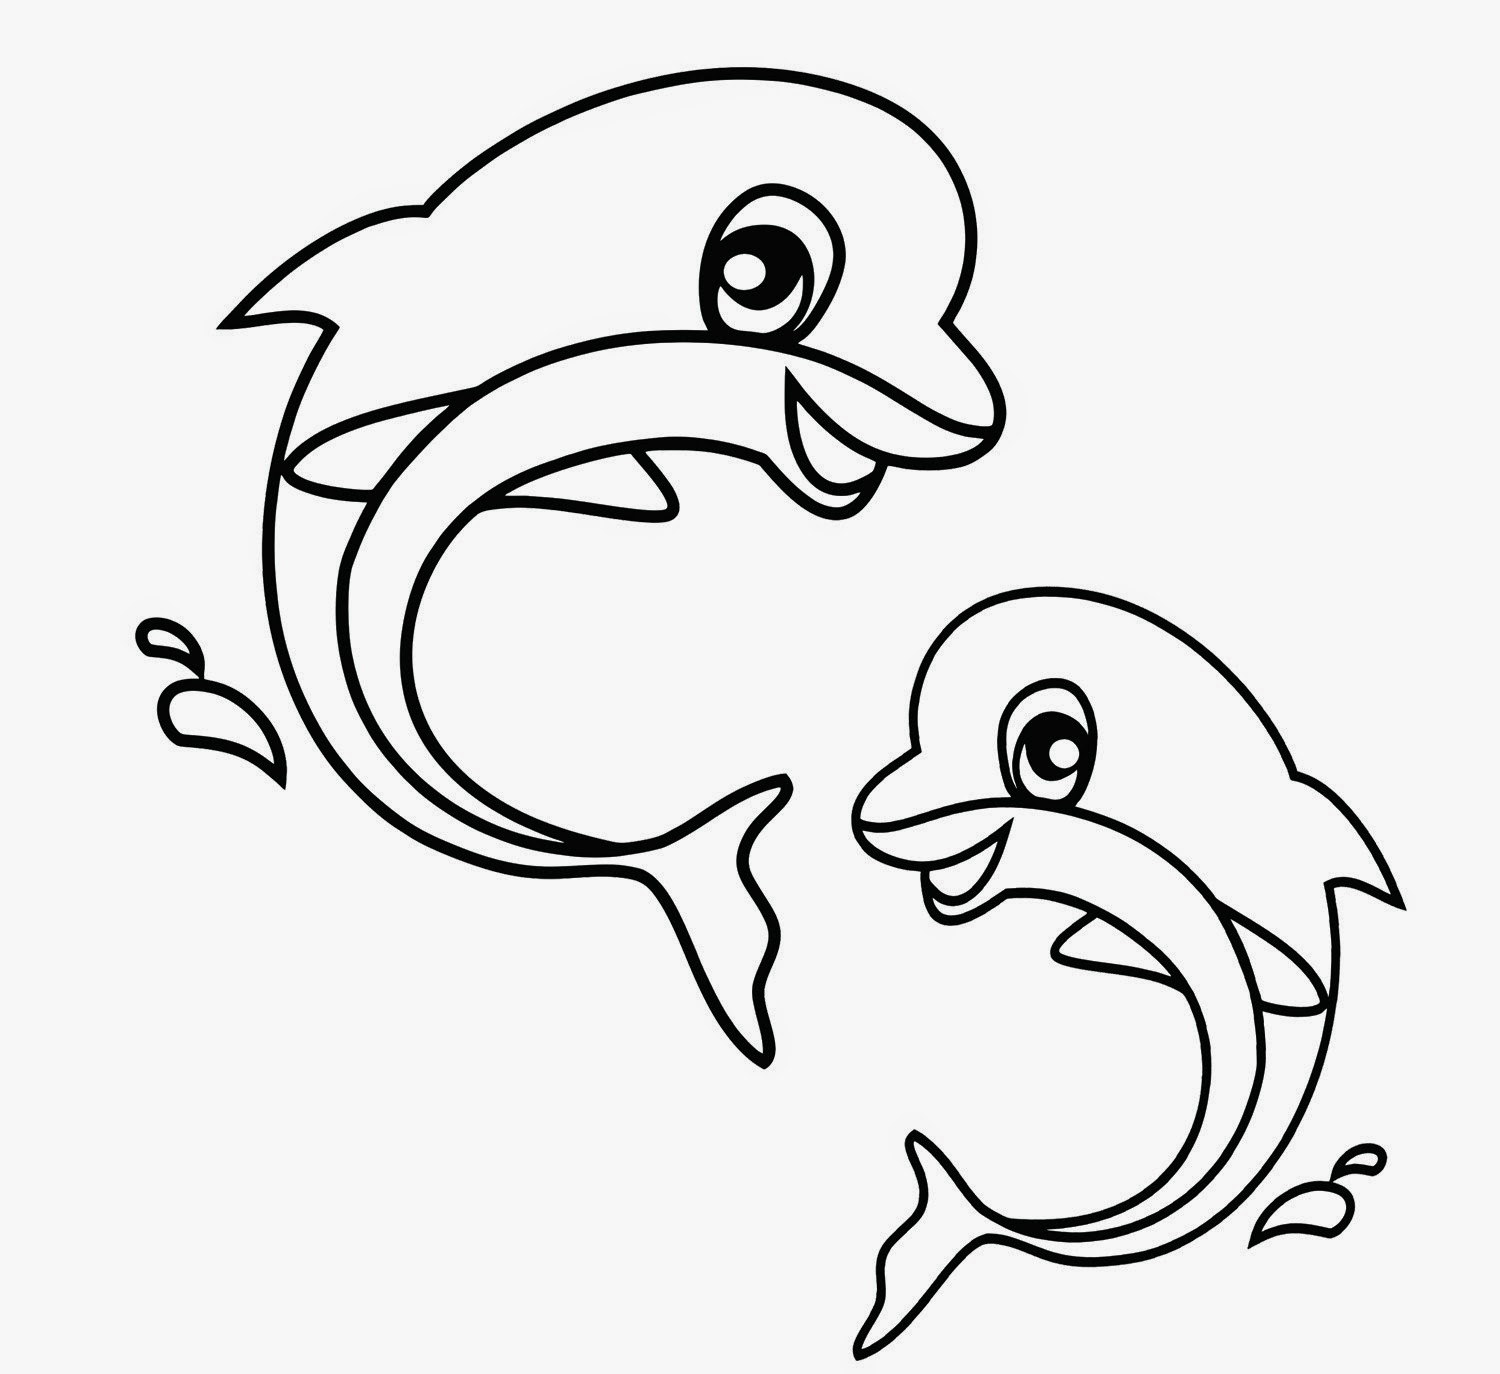 dolphins to color and print free dolphin clipart printable coloring pages outline to and dolphins print color